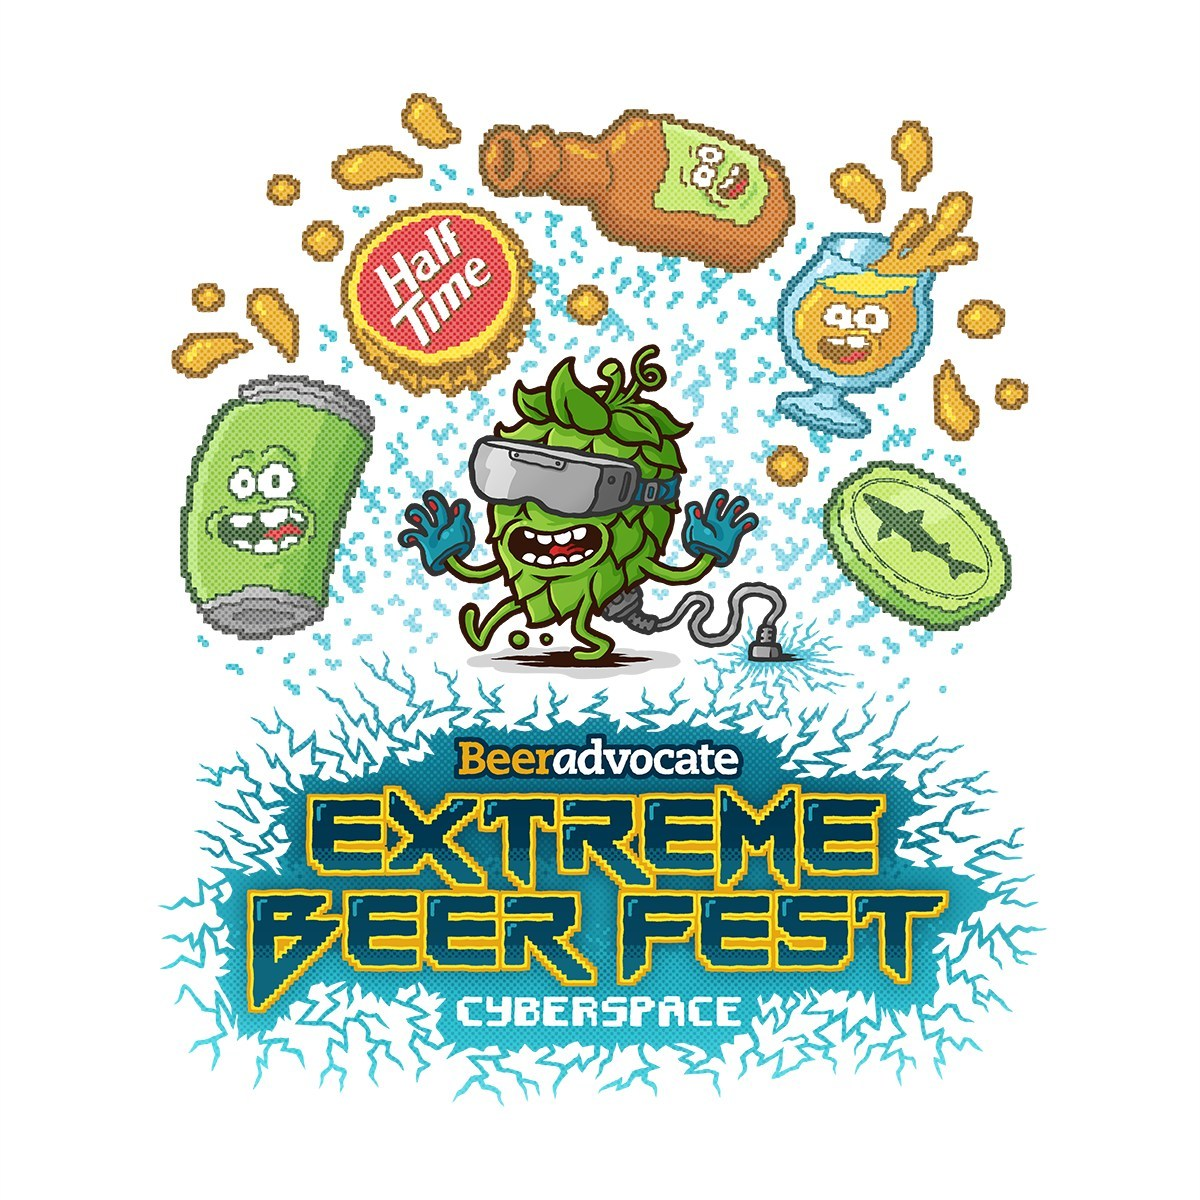 Beeradvocate Announces Extreme Beer Fest Cyberspace